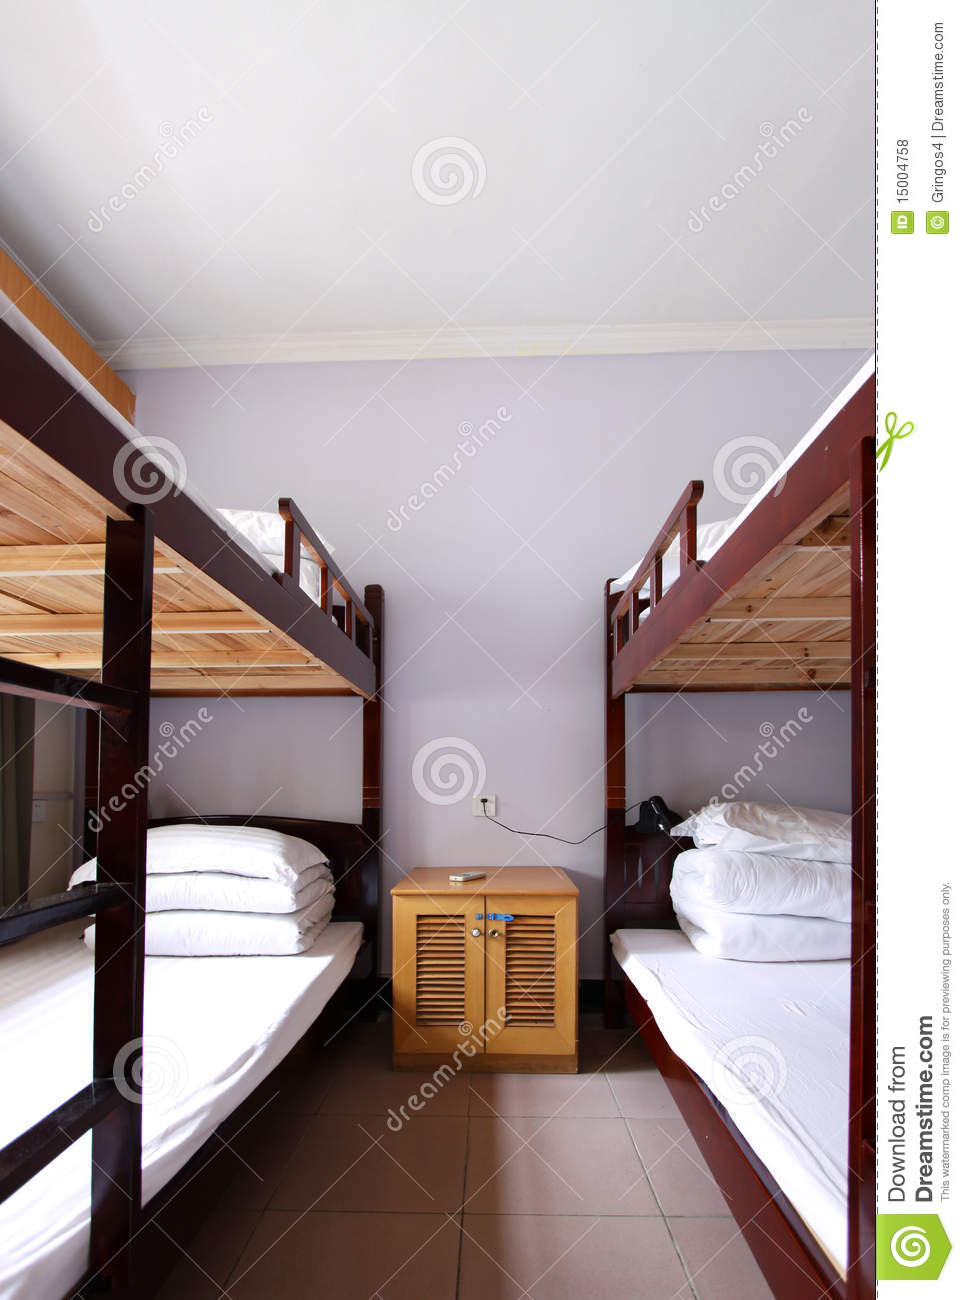 The Interior Of A 4 Bed Dorm Stock Photo Image 15004758